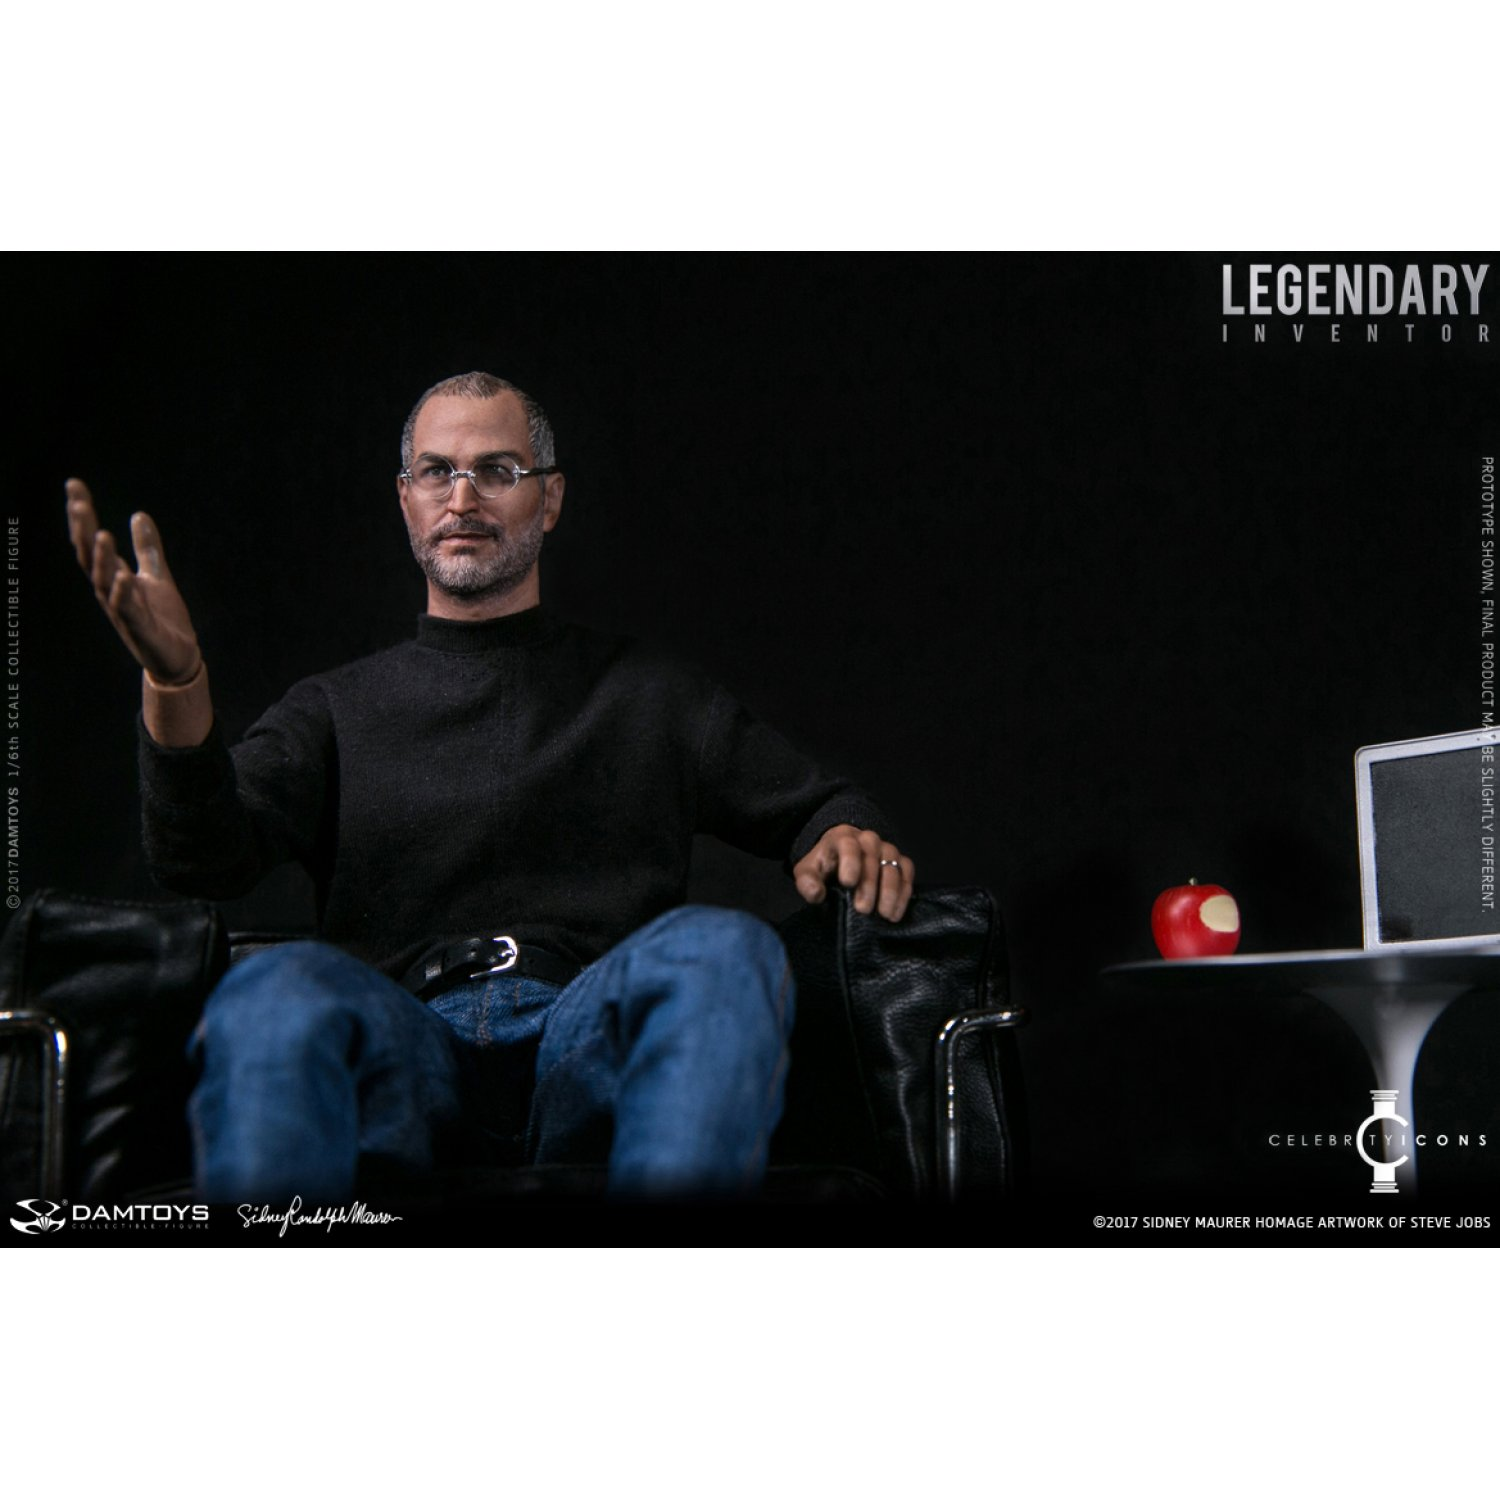 Steve Jobs figurina 3